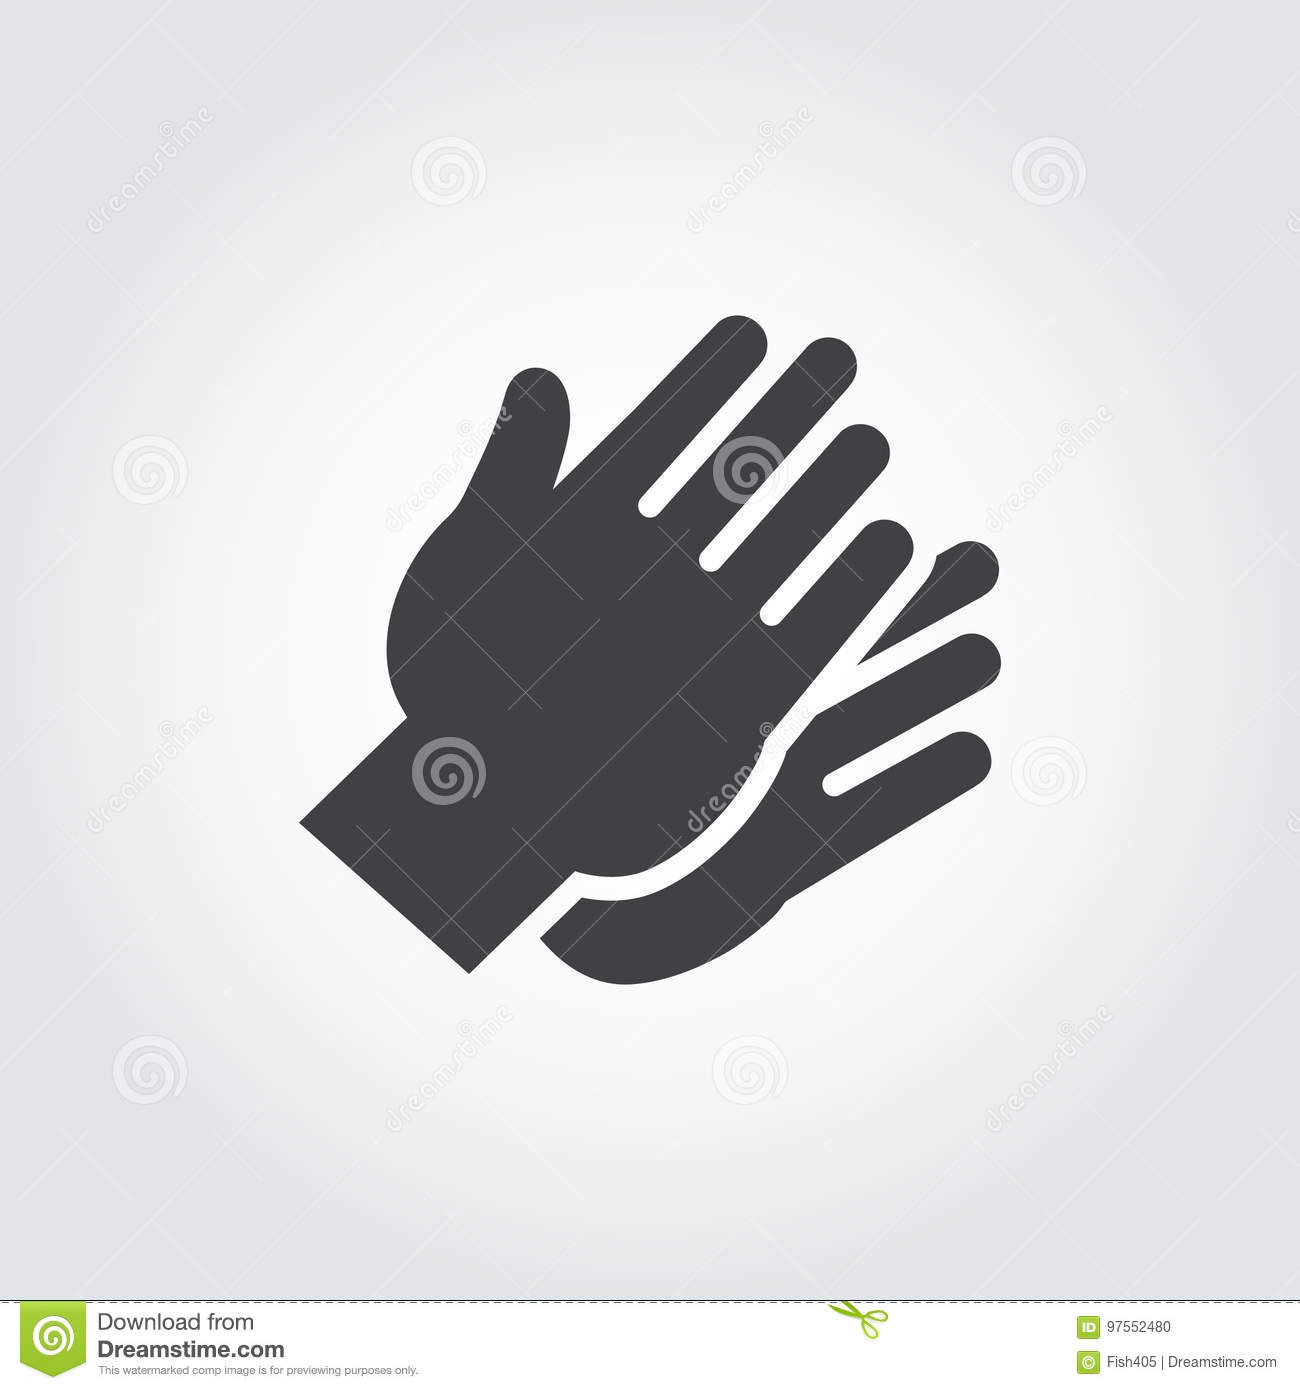 Two Hands Clapping In Flat Style Graphic Black Icon Symbol Of